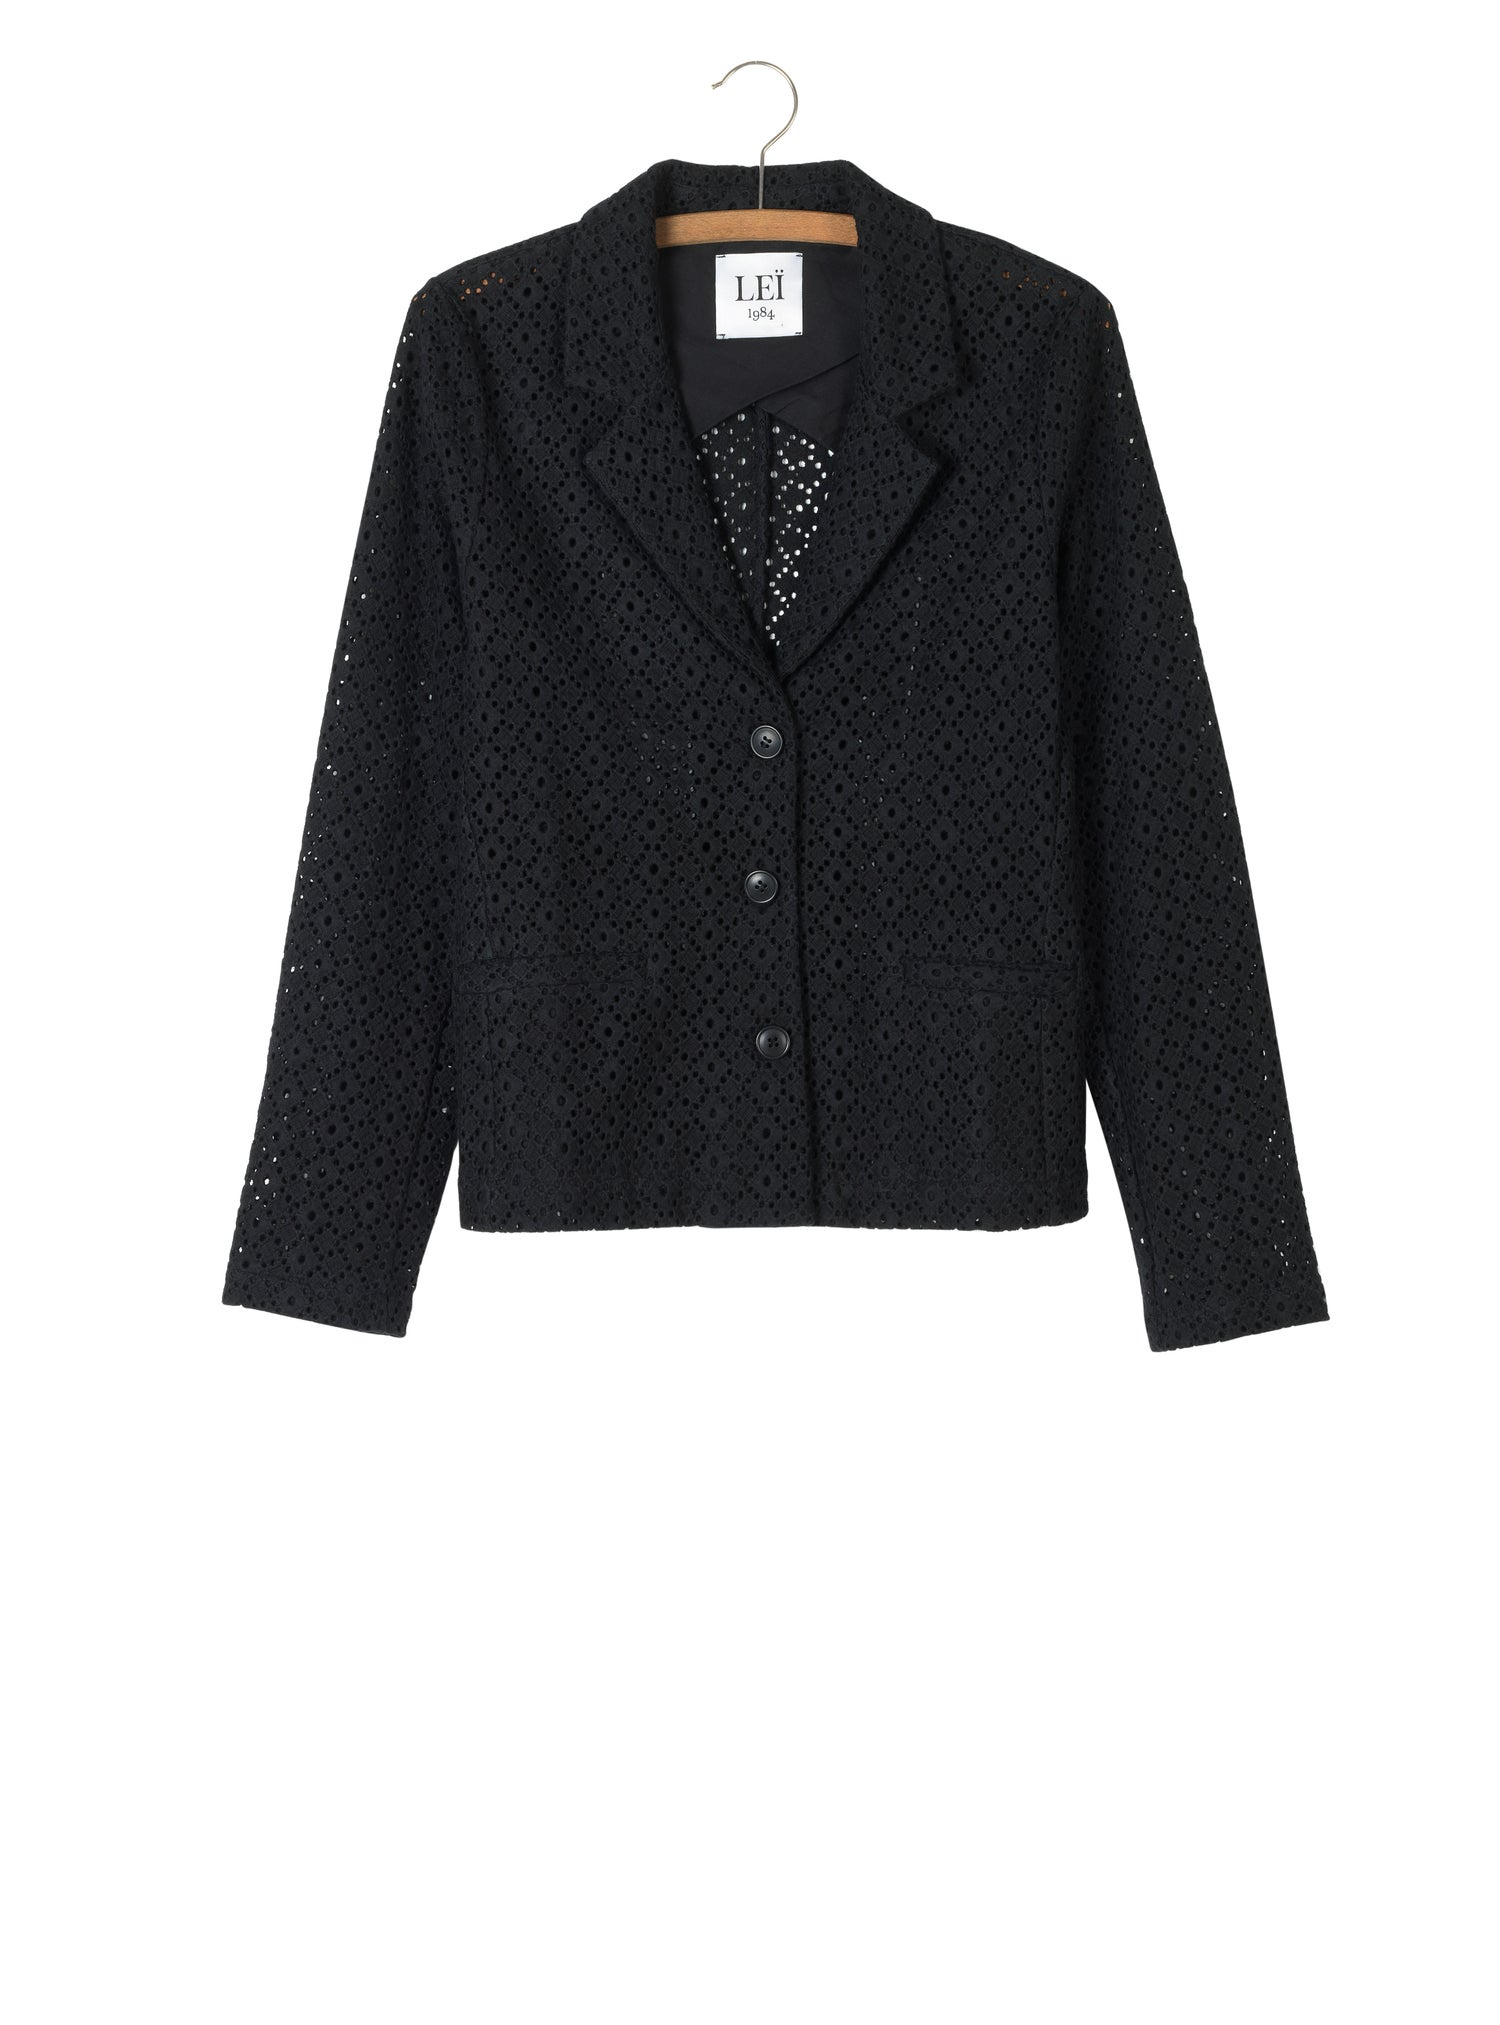 Image of Blazer Broderie anglaise VALERY 189€ -60%